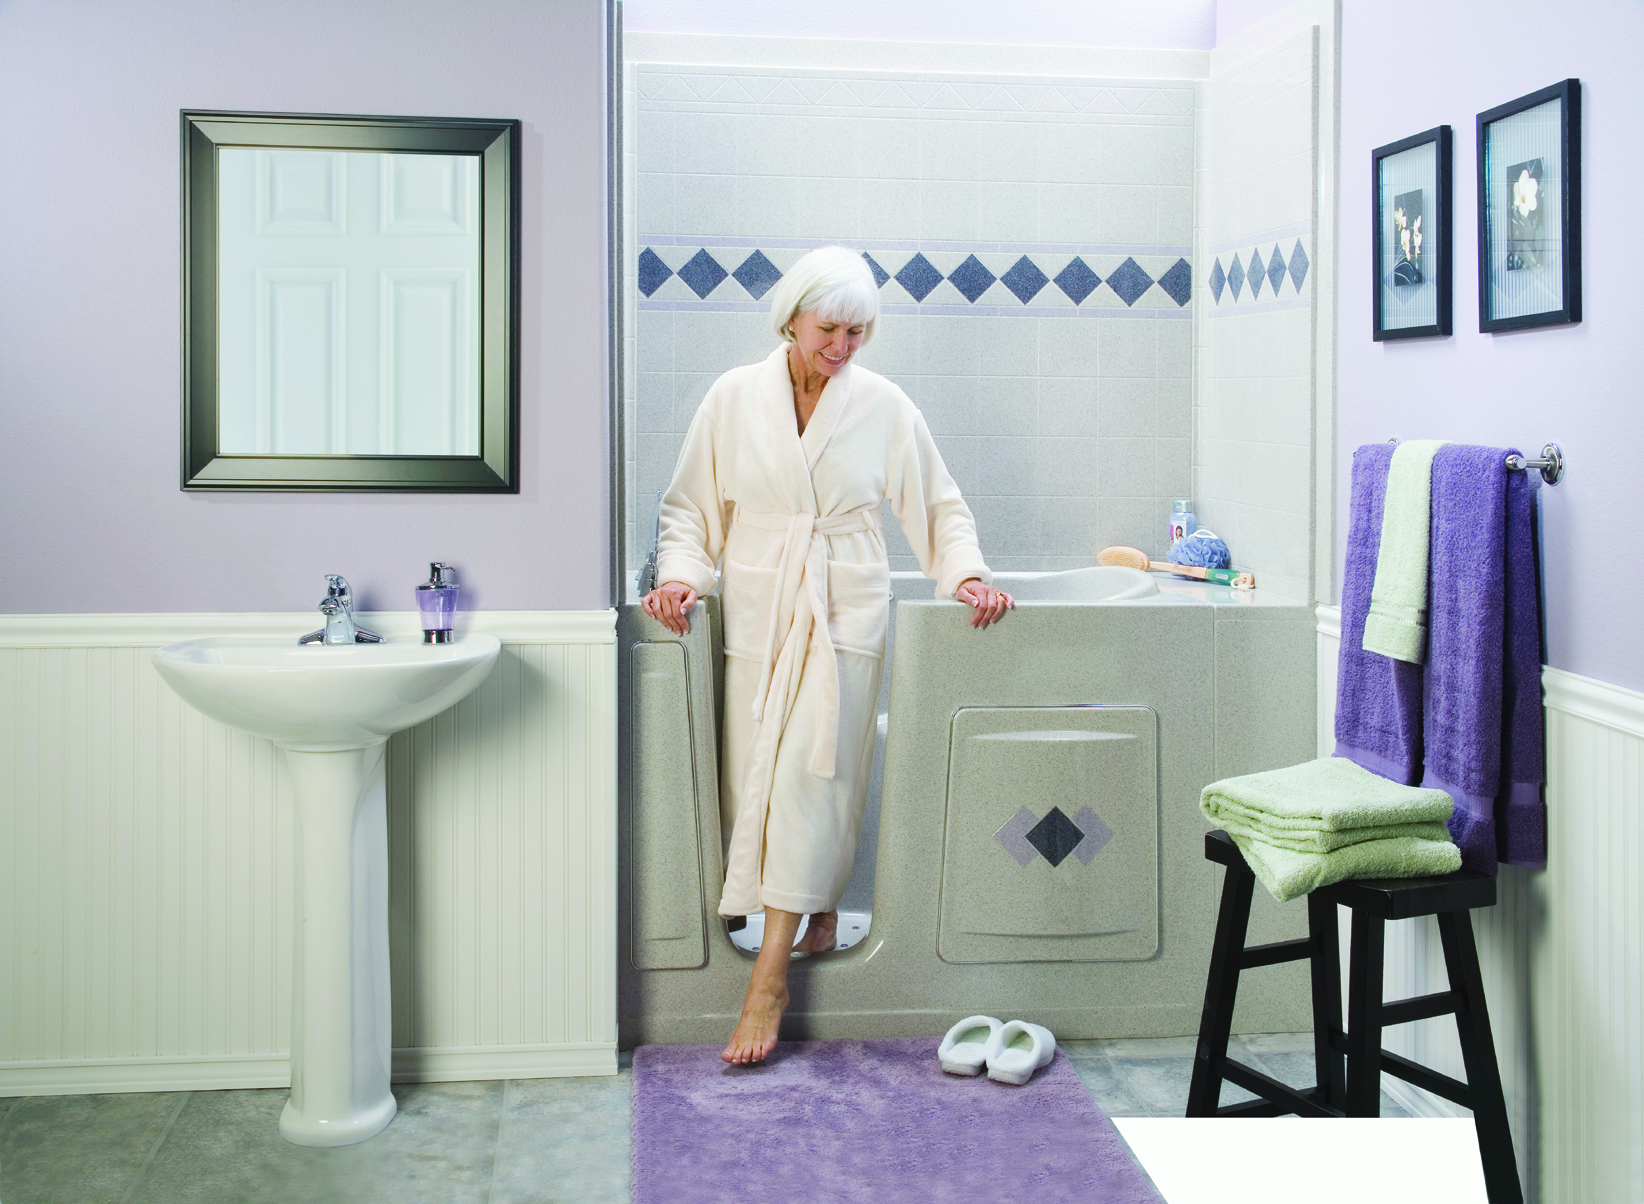 Choosing A Walk In Bathtub Part 2 Bather Considerations Aquassure Accessible Baths Accessible Baths Showers For Independent Assisted Living 1 866 404 8827